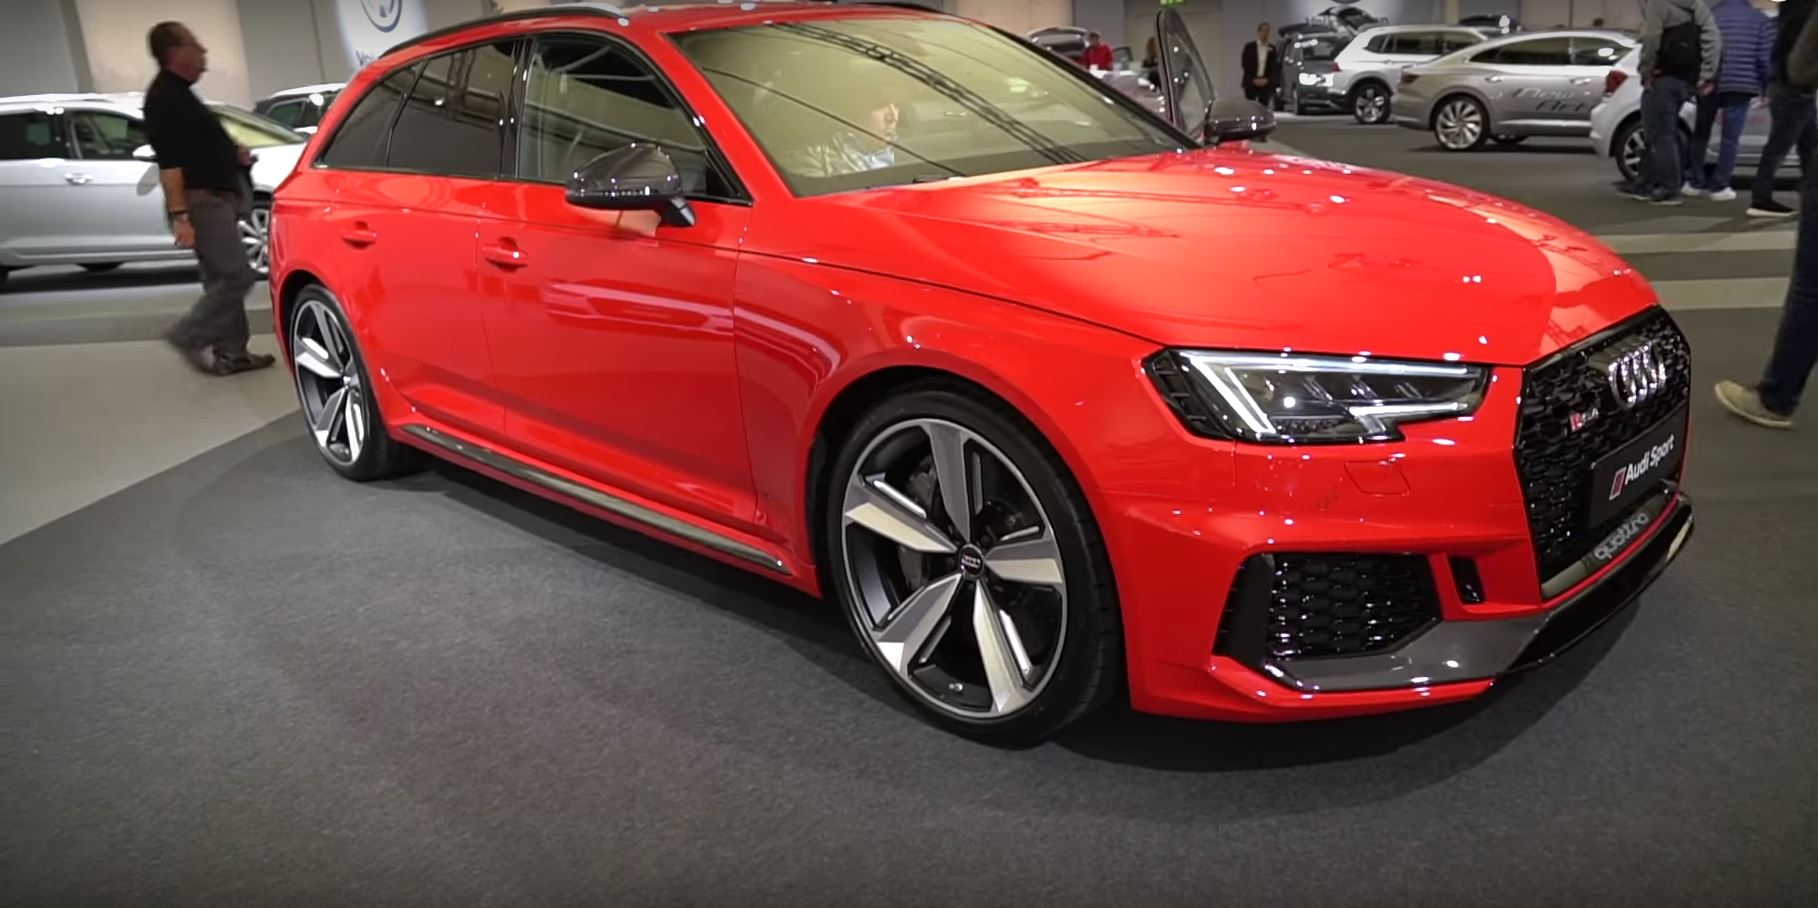 2018 Audi Rs4 Avant Carbon Edition Looks Good In Red Autoevolution